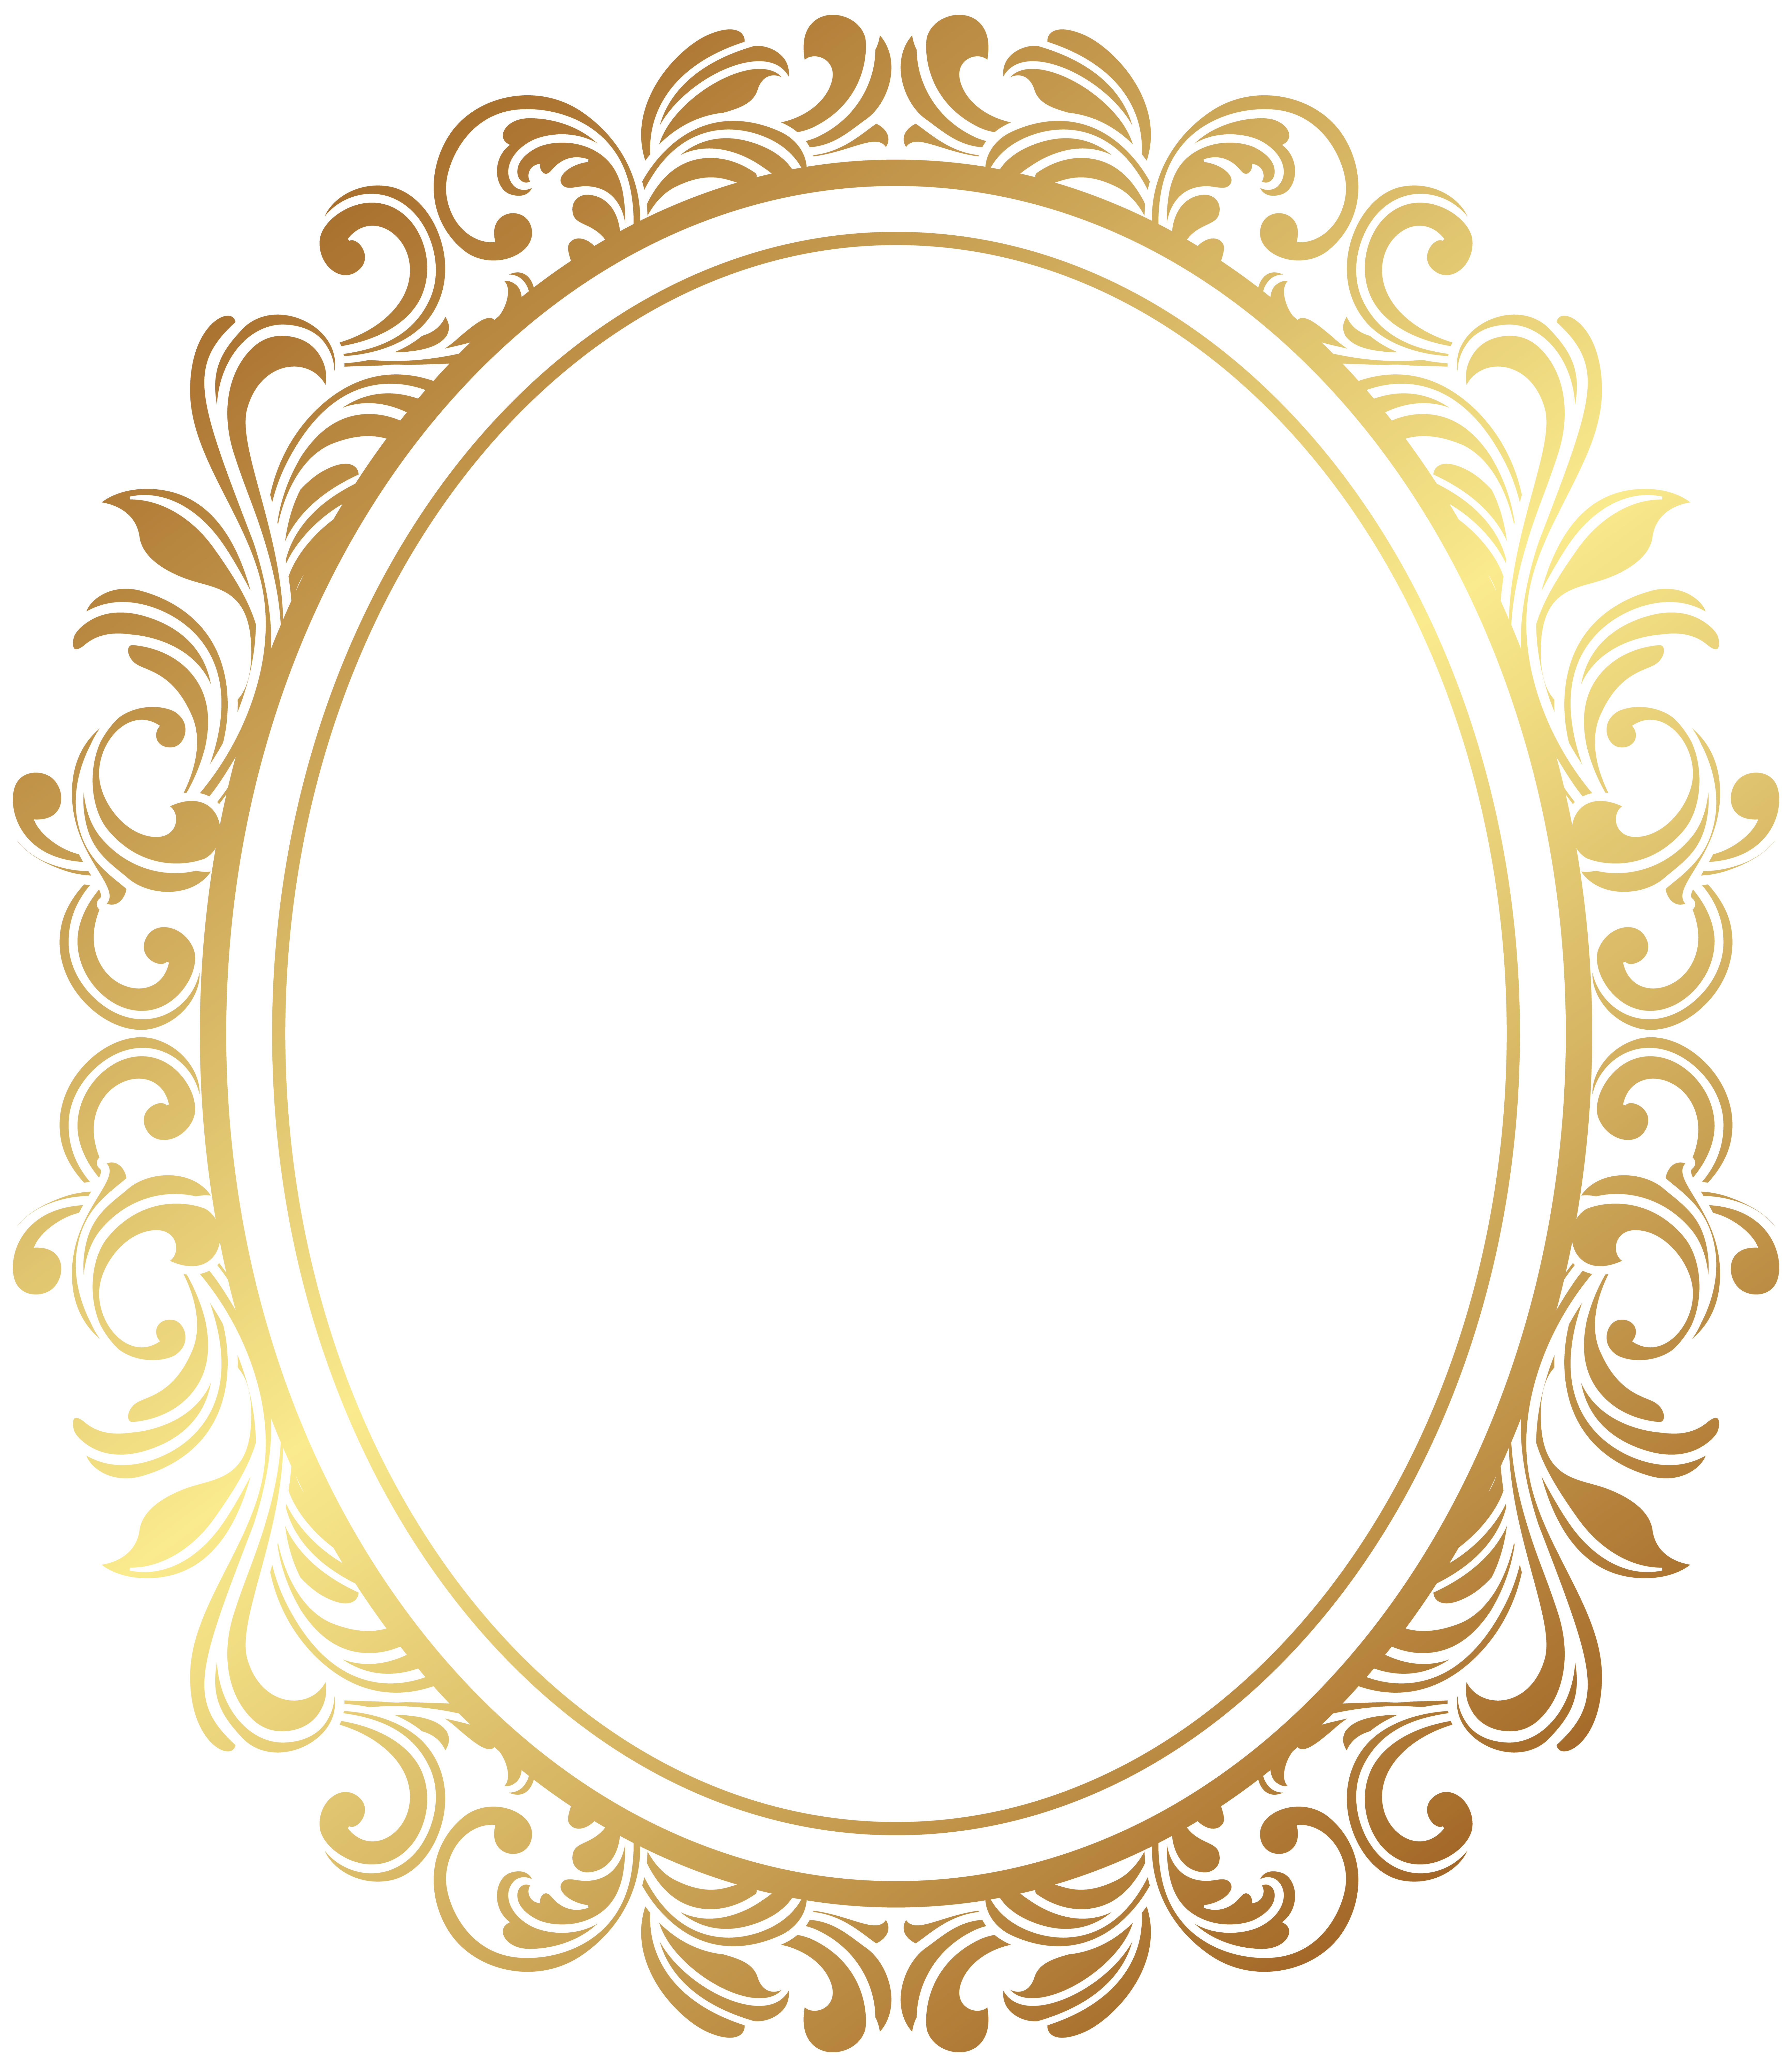 Picture border deco clip. Oval frame png